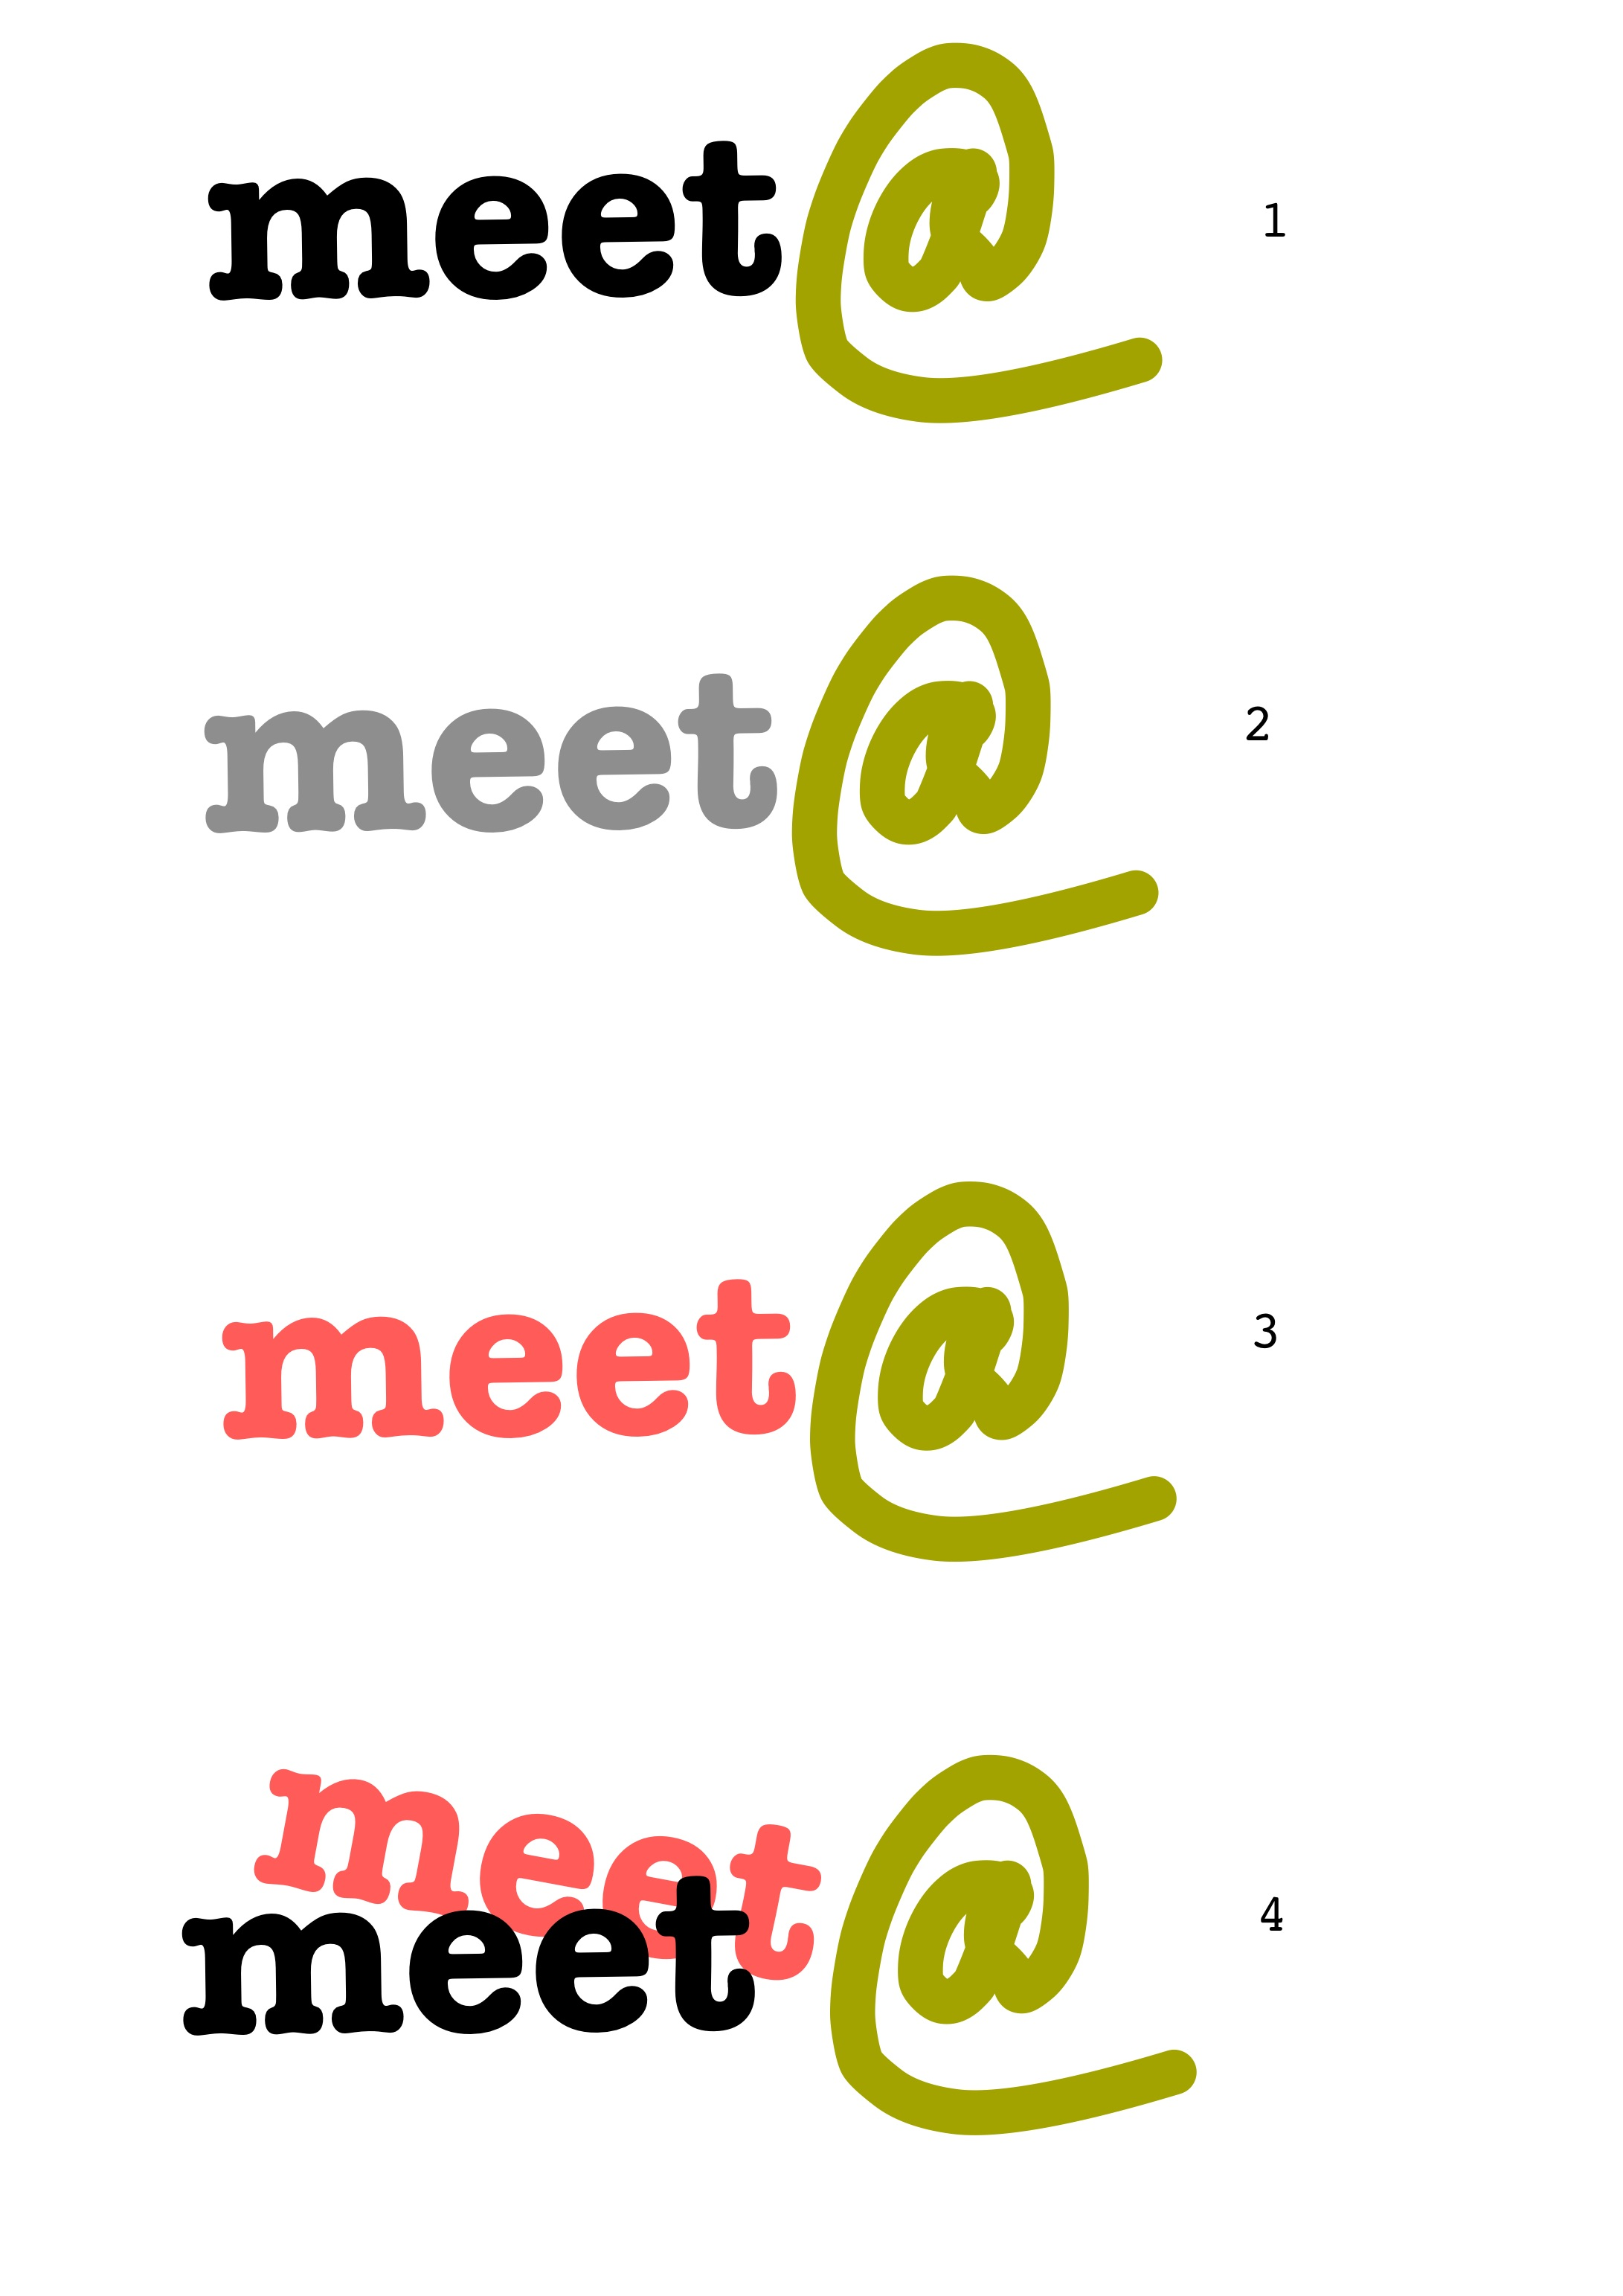 meet@ logo draft